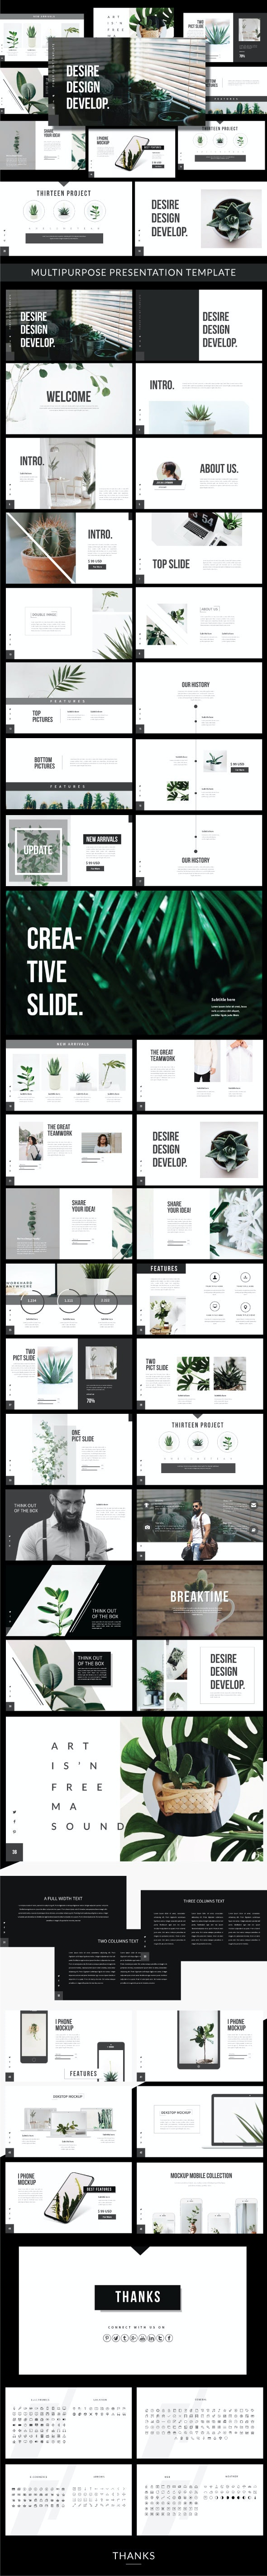 Desire Powerpoint Template - Business PowerPoint Templates